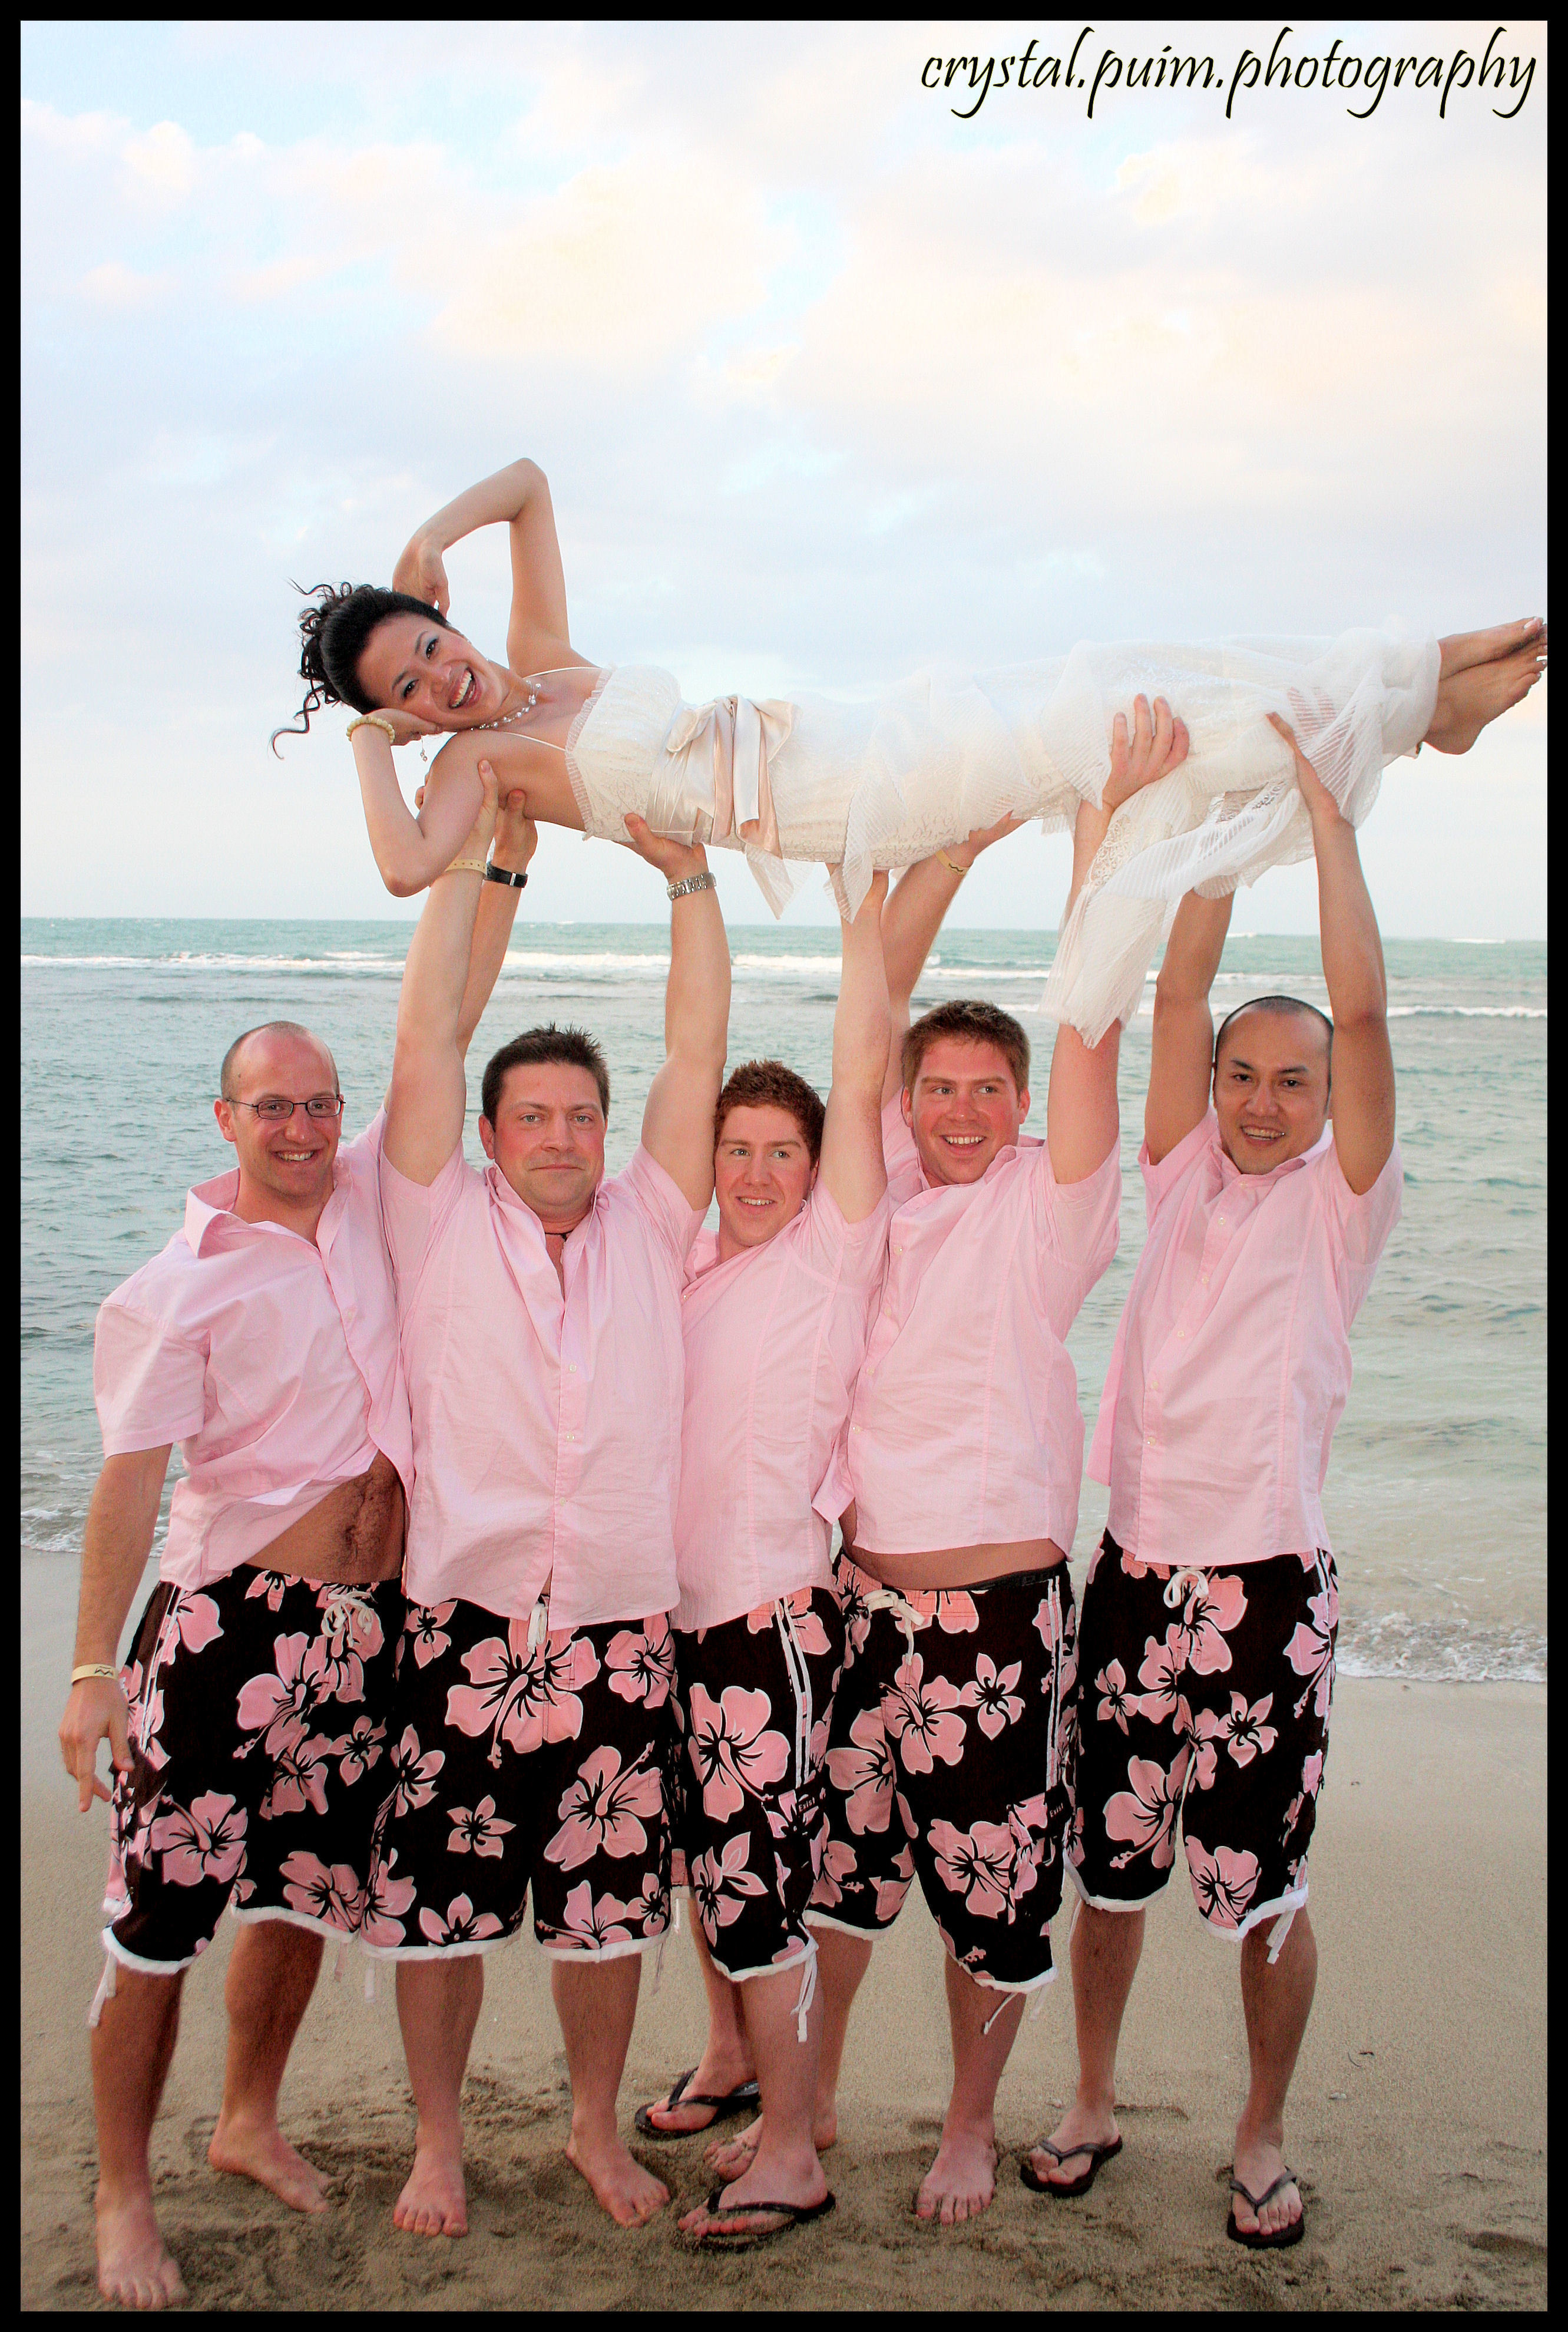 Beach, Groomsmen, Bride, Fun, Crystal, Photos, Formals, Crystalpuimphotography, Puim, Dominican